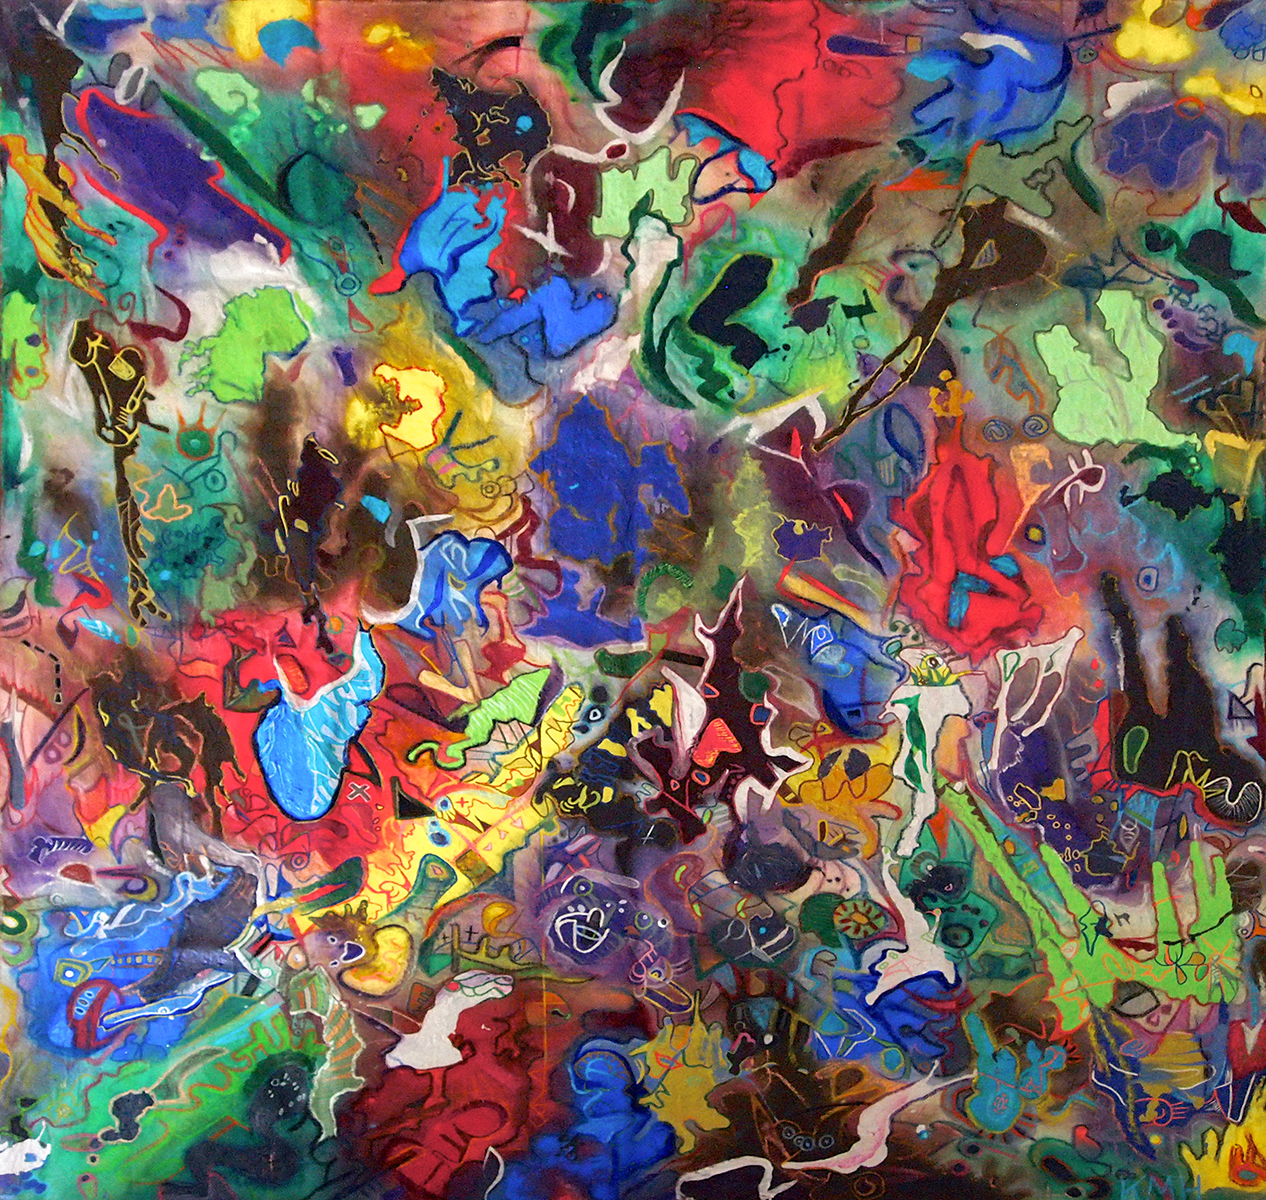 """MICRO MACRO II""   69 x 61 inches (custom)  Acrylic & Mixed Media on Raw, Un-stretched Canvas"